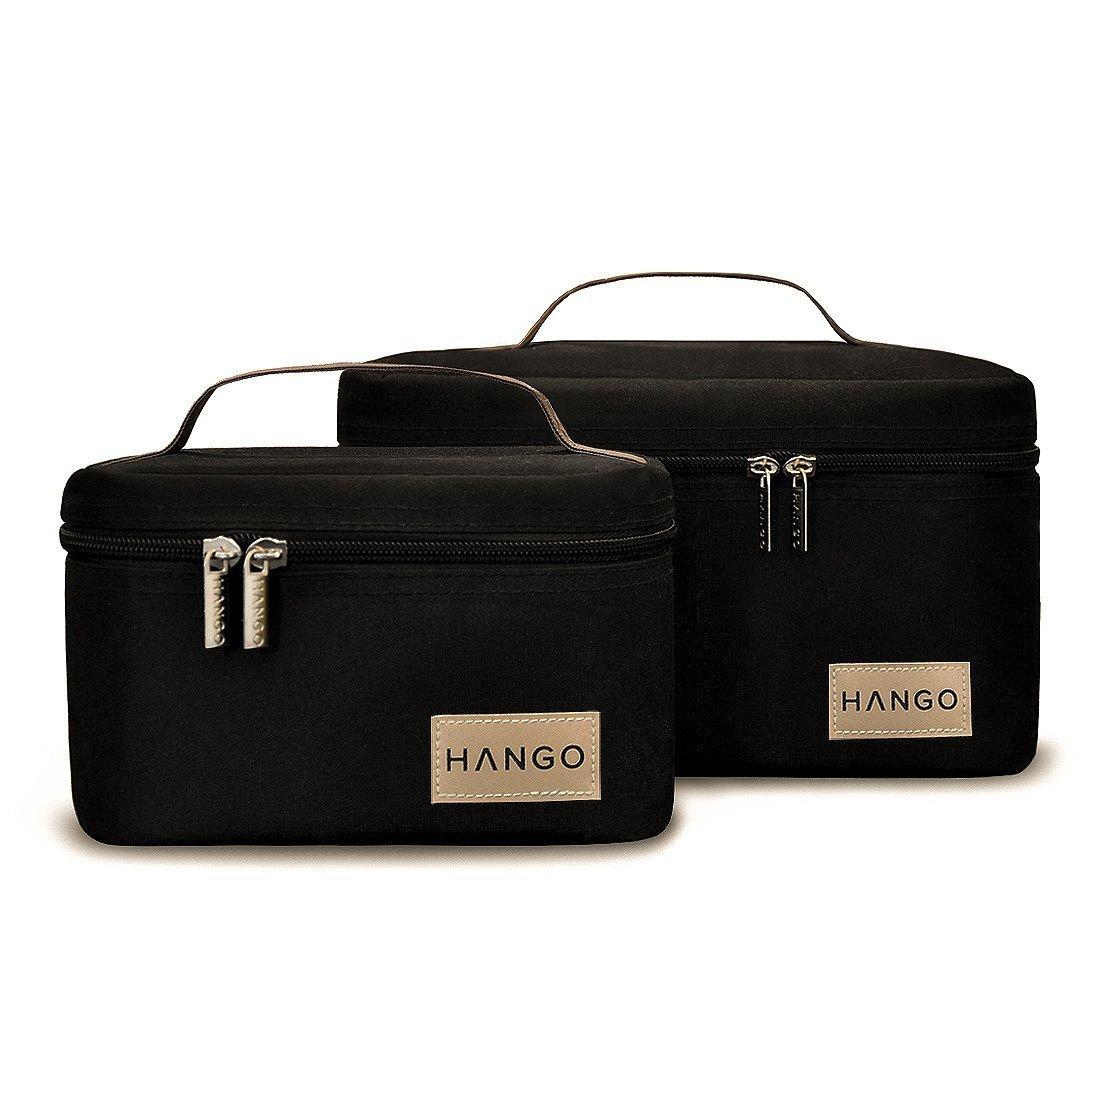 New Hango Insulated Lunch Box Cooler Bag Set Of 2 Sizes